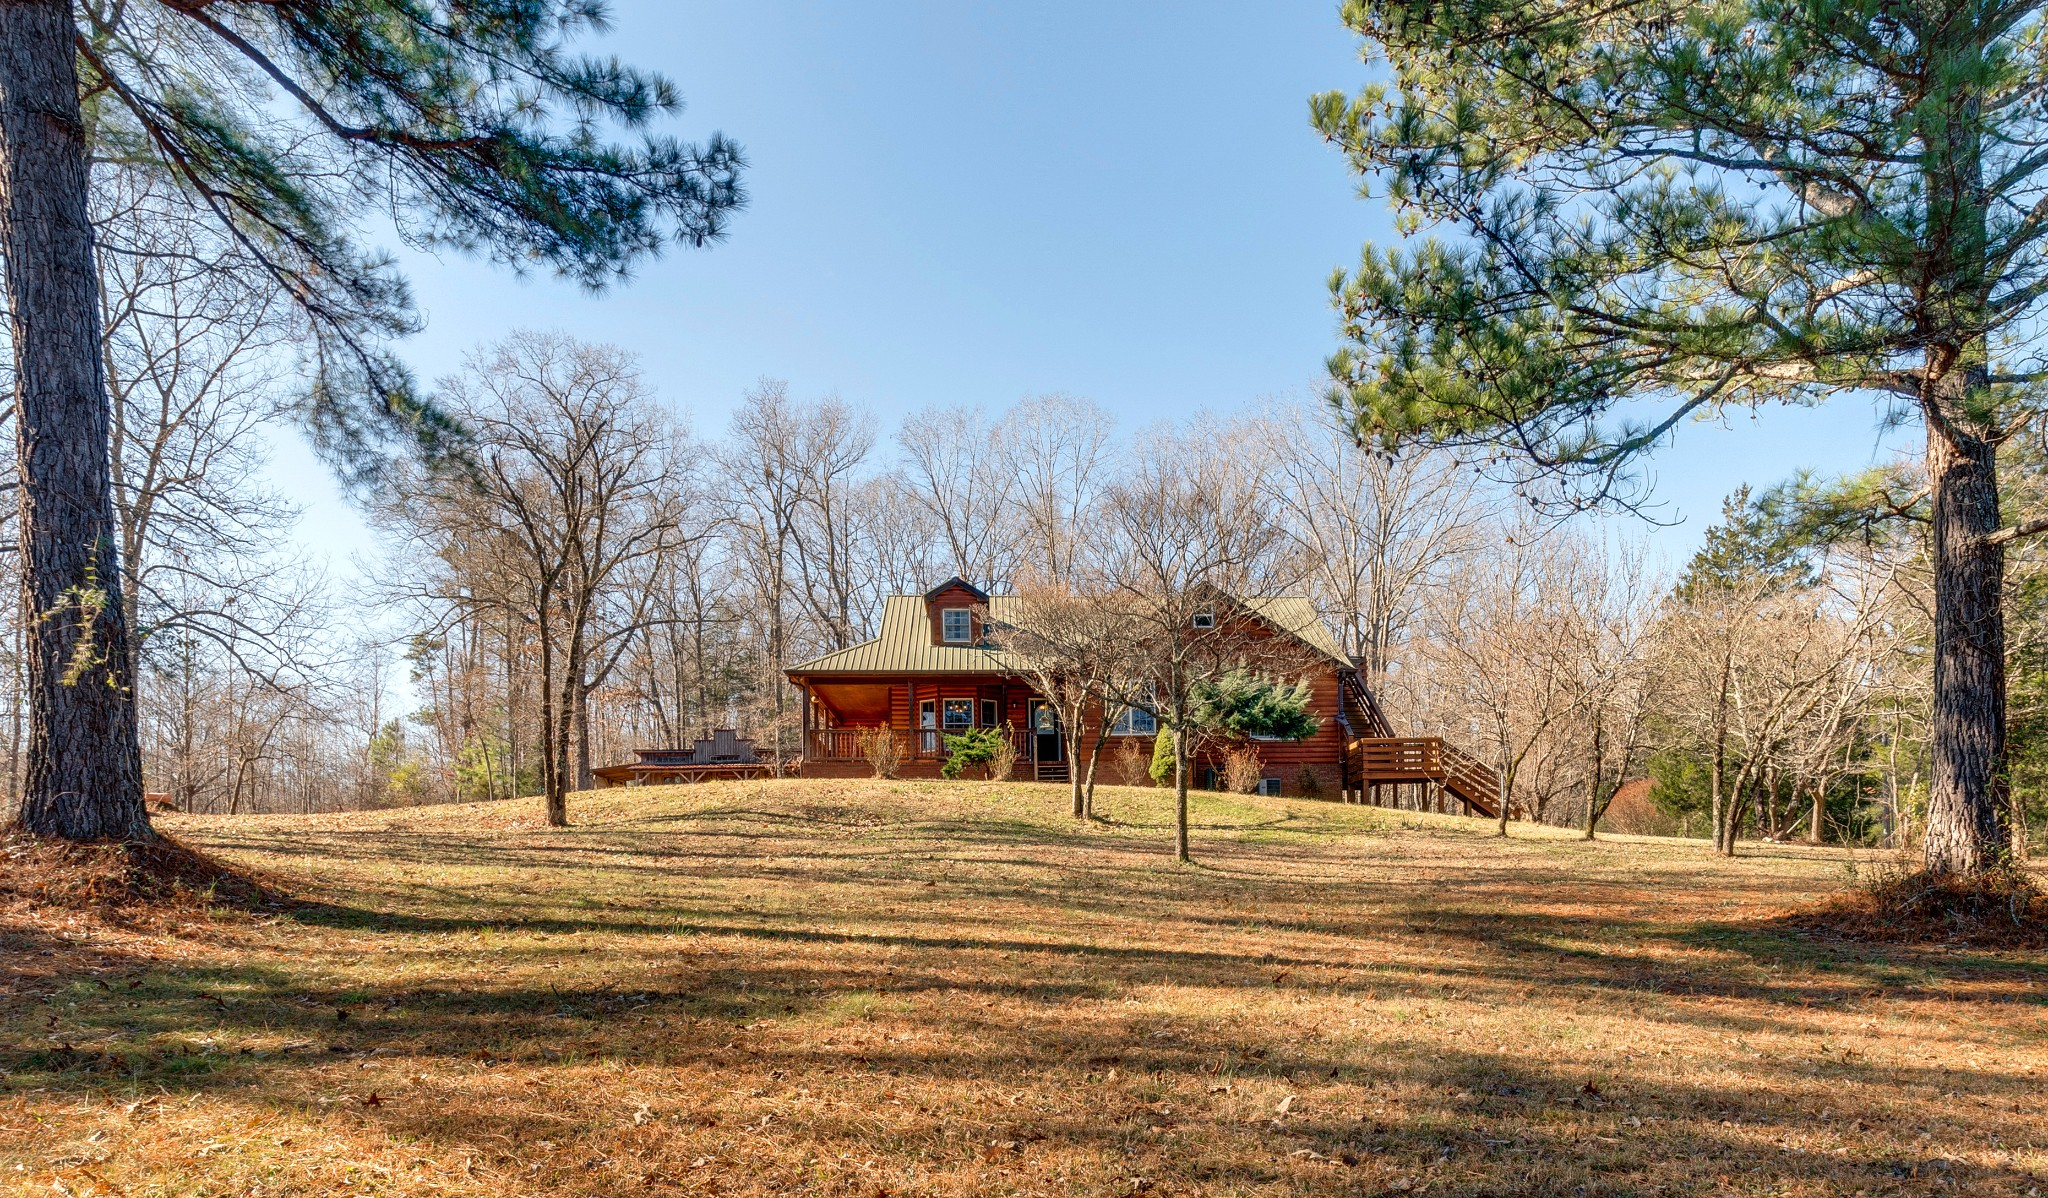 6330 Hassells Creek Ln, Centerville, TN 37033 - Centerville, TN real estate listing